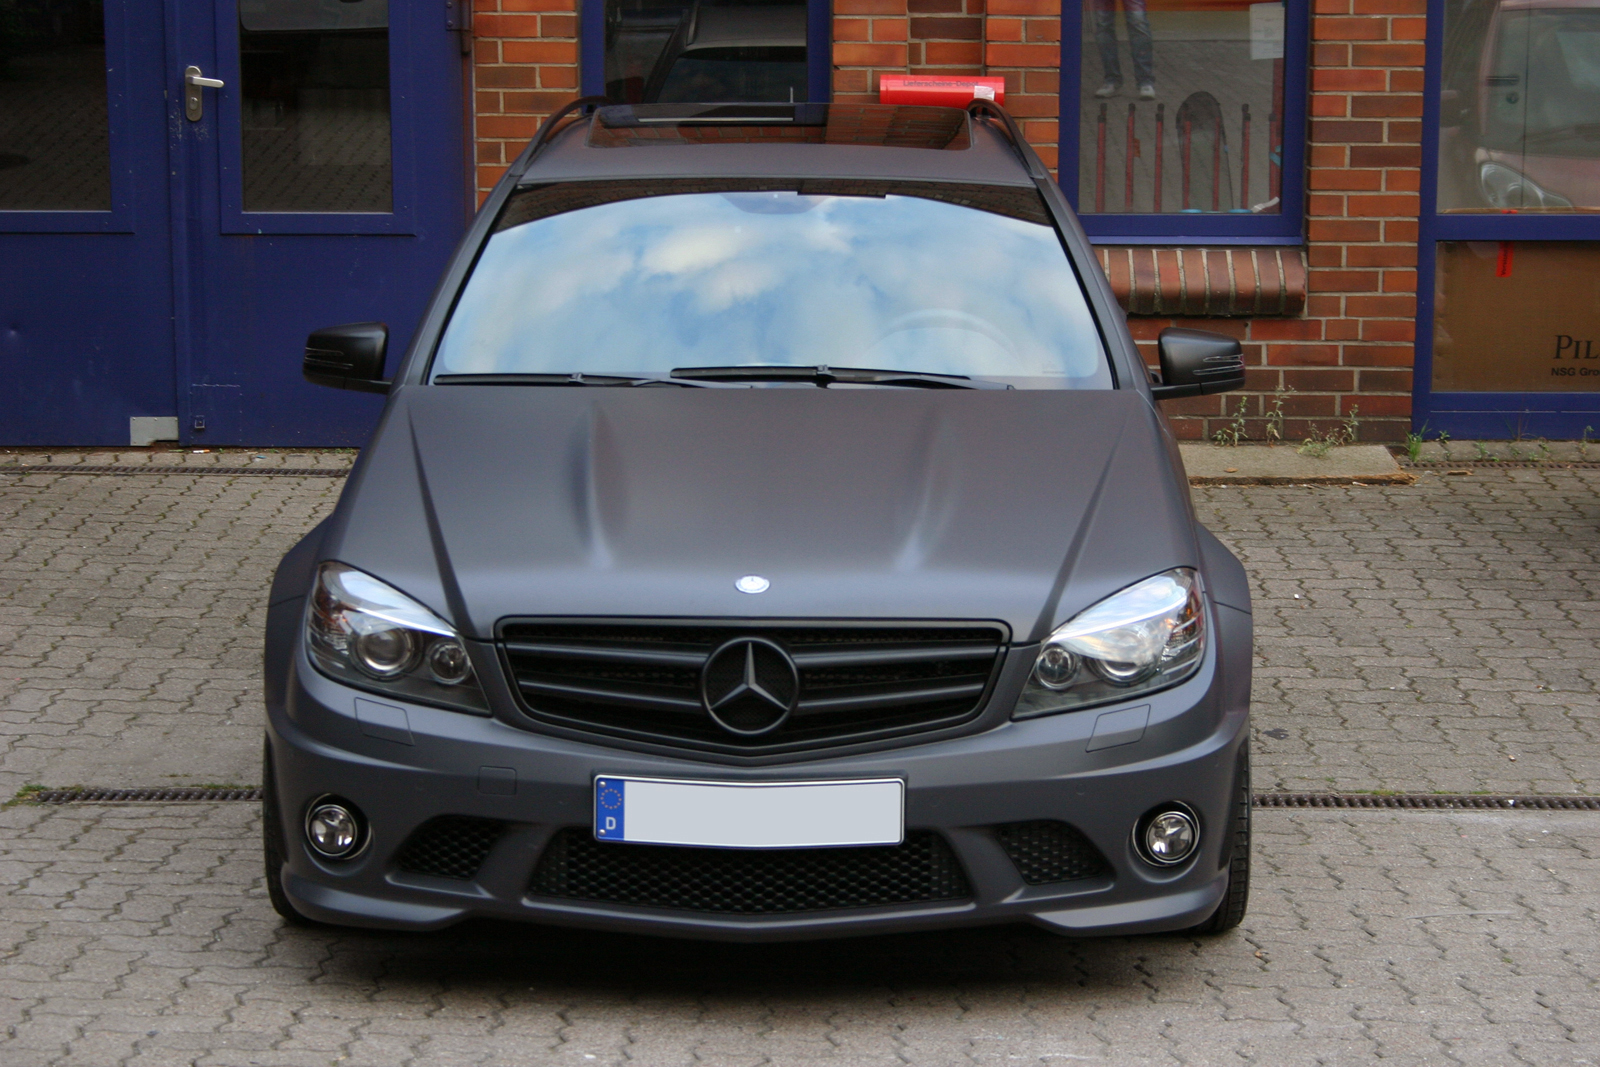 Frontalansicht des folierten Mercedes C63 in Anthrazit matt